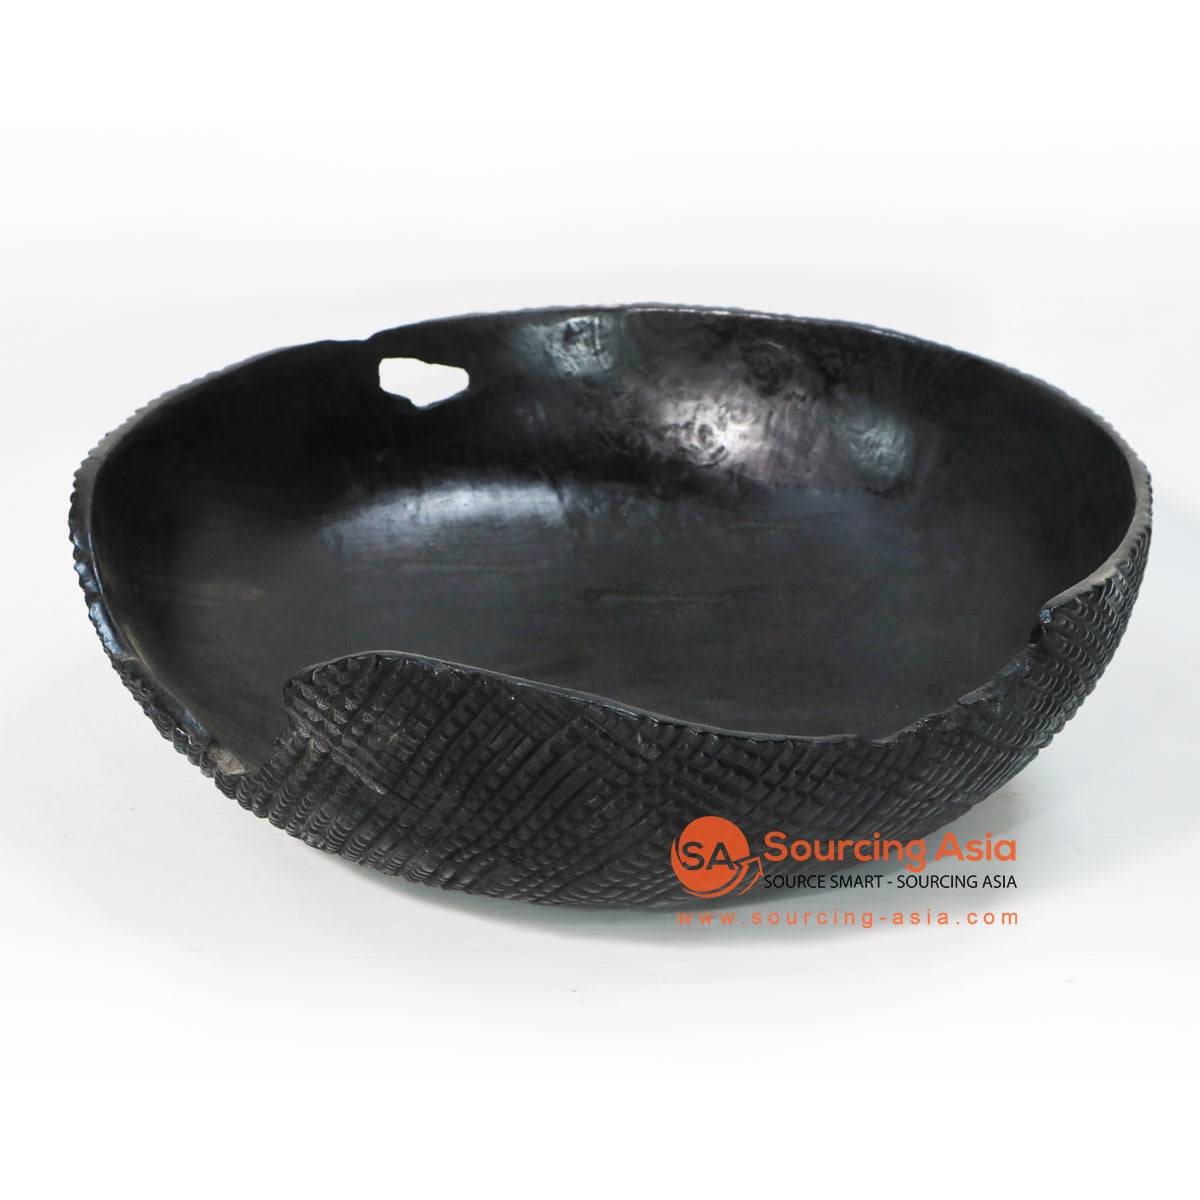 BMWC041 BLACK TEAK WOOD SERVING BOWL